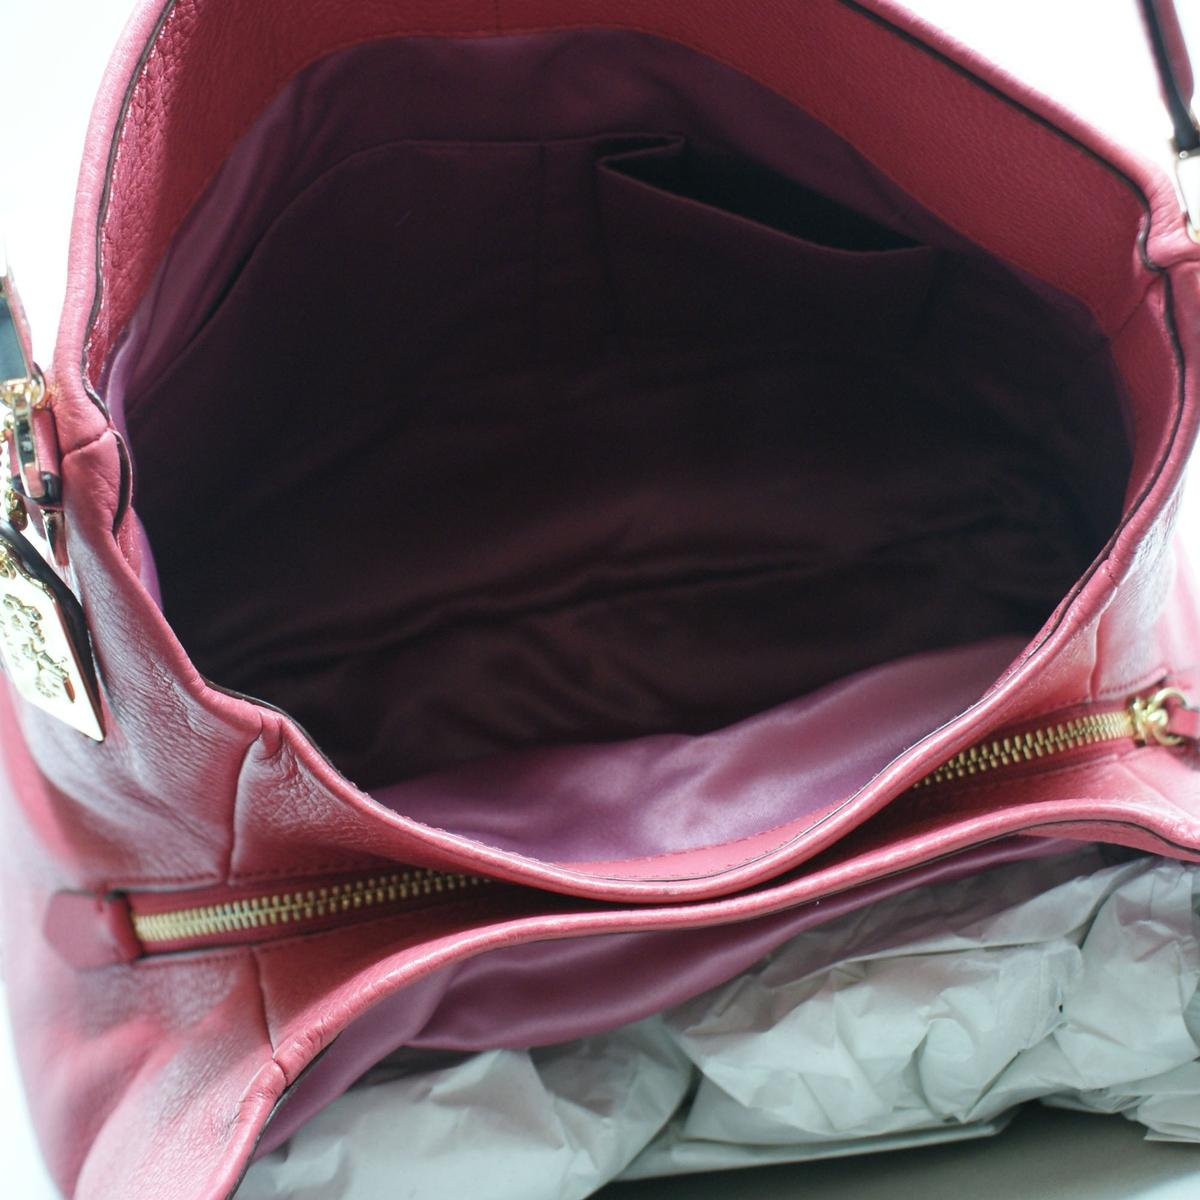 ... switzerland home coach madison leather small phoebe shoulder bag  loganberry. click thumbnail to zoom. ... 8274c576e4